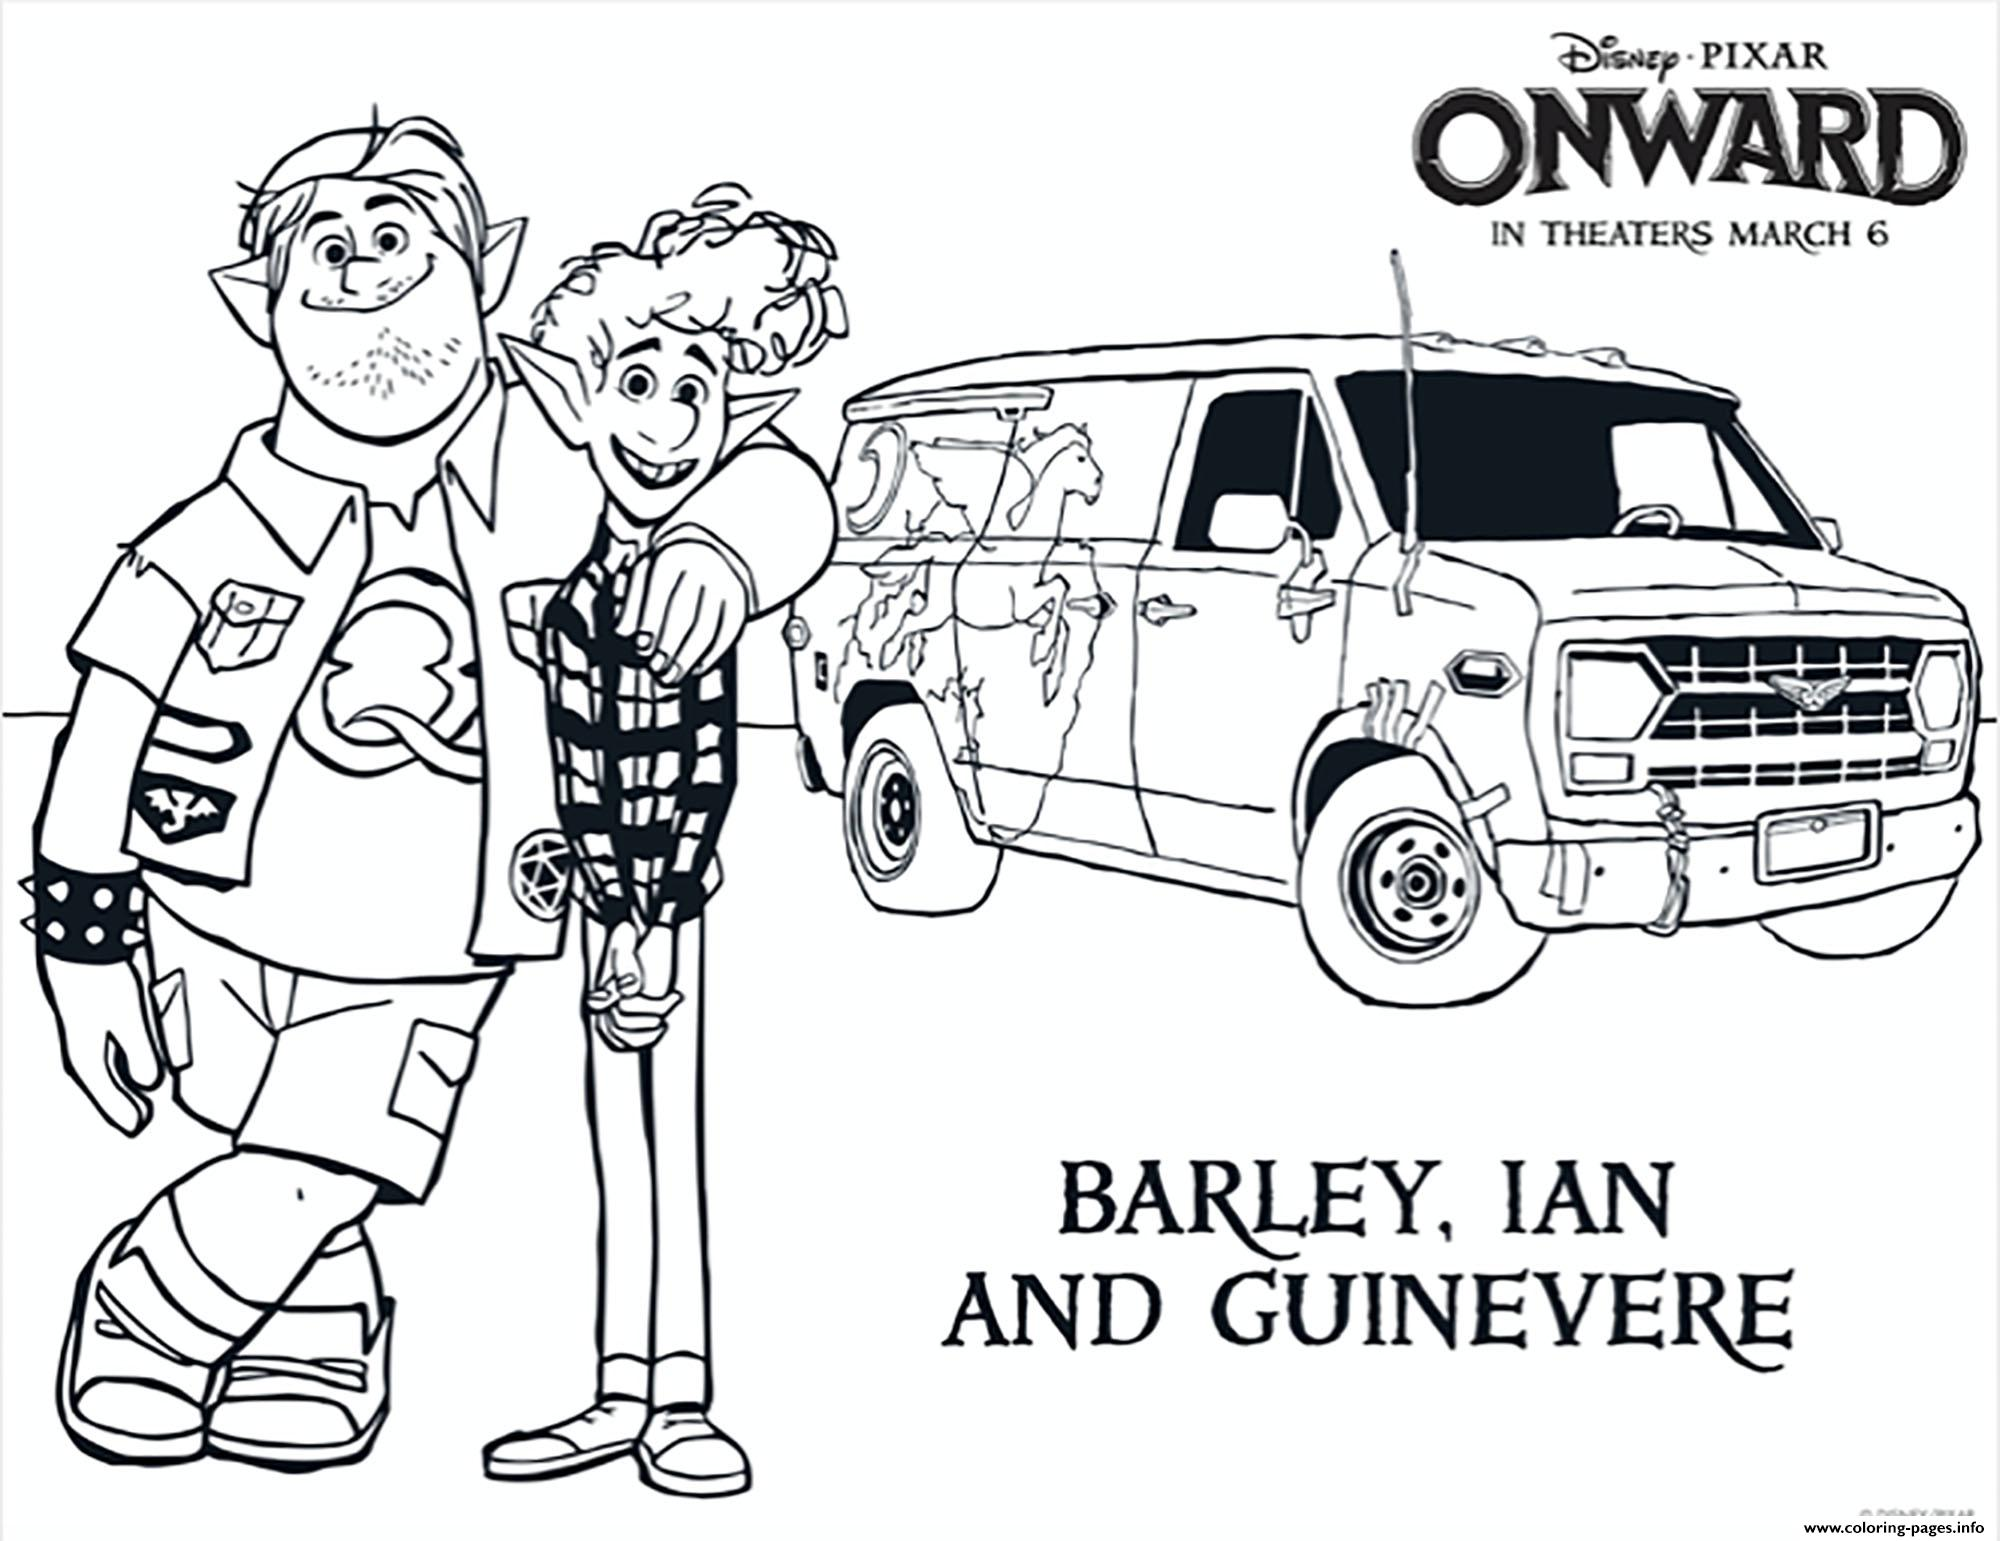 Onward Barley Ian And Guinevere coloring pages